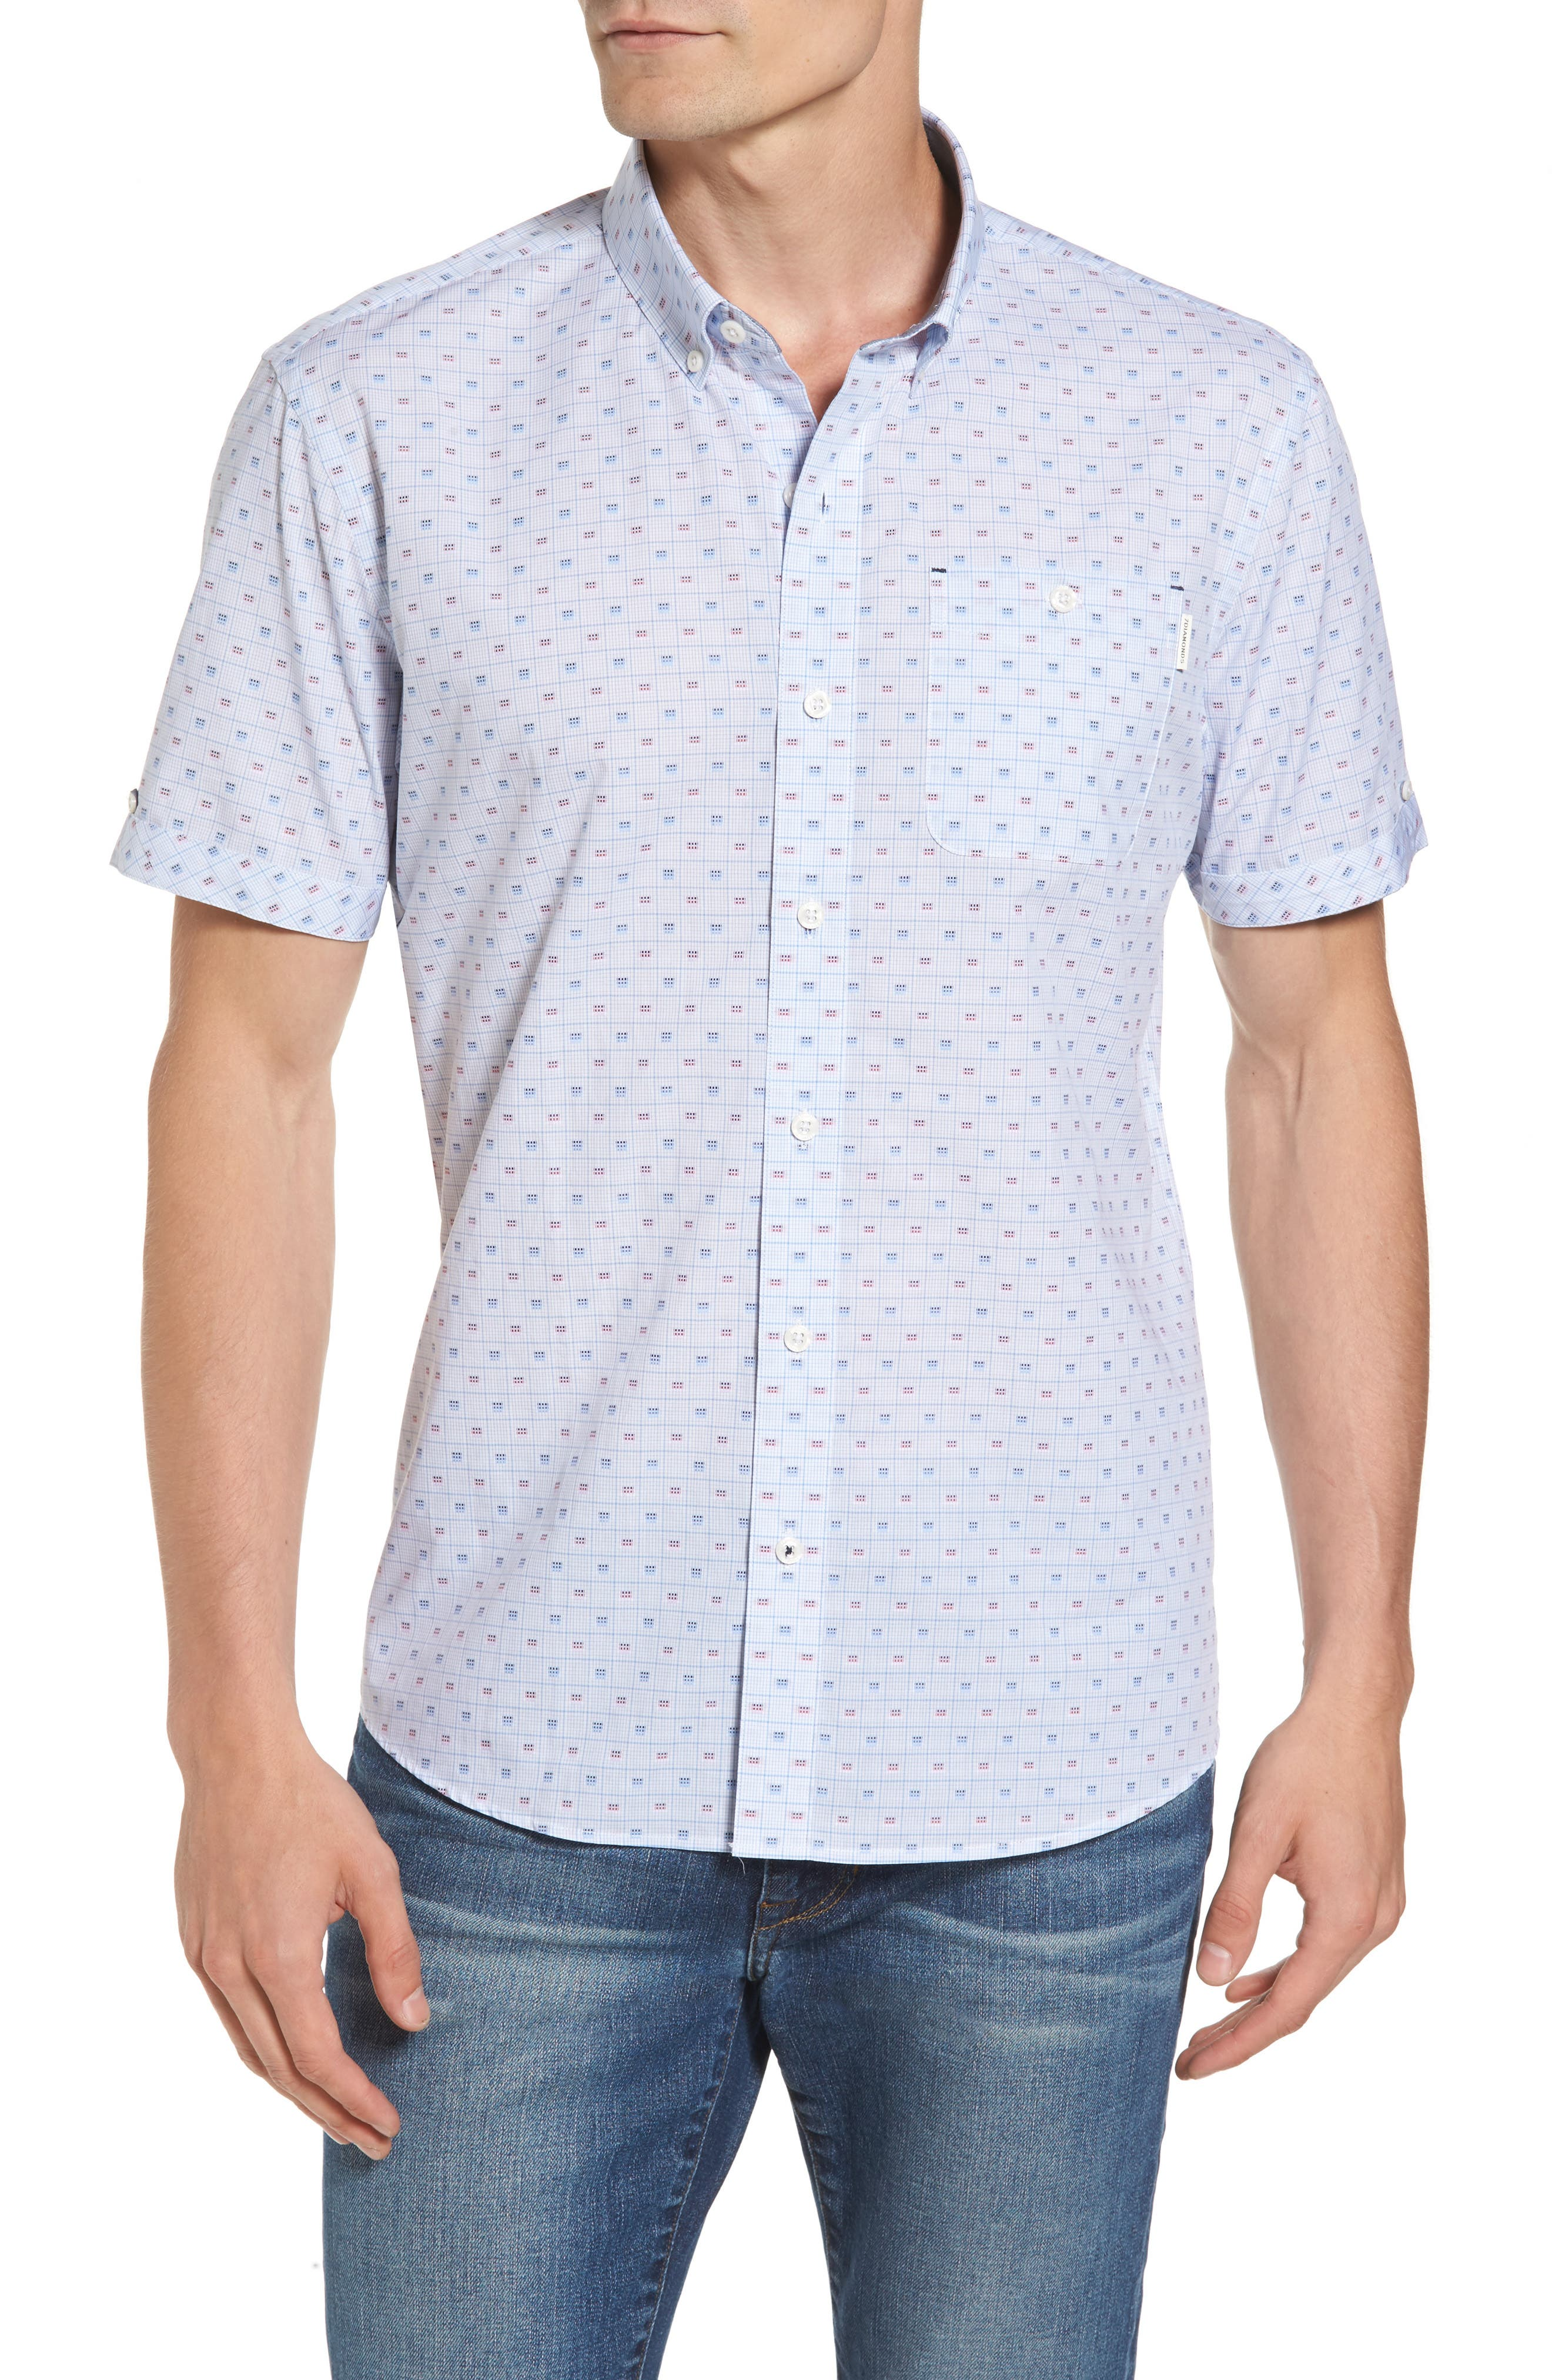 Atmosphere Woven Shirt,                         Main,                         color,